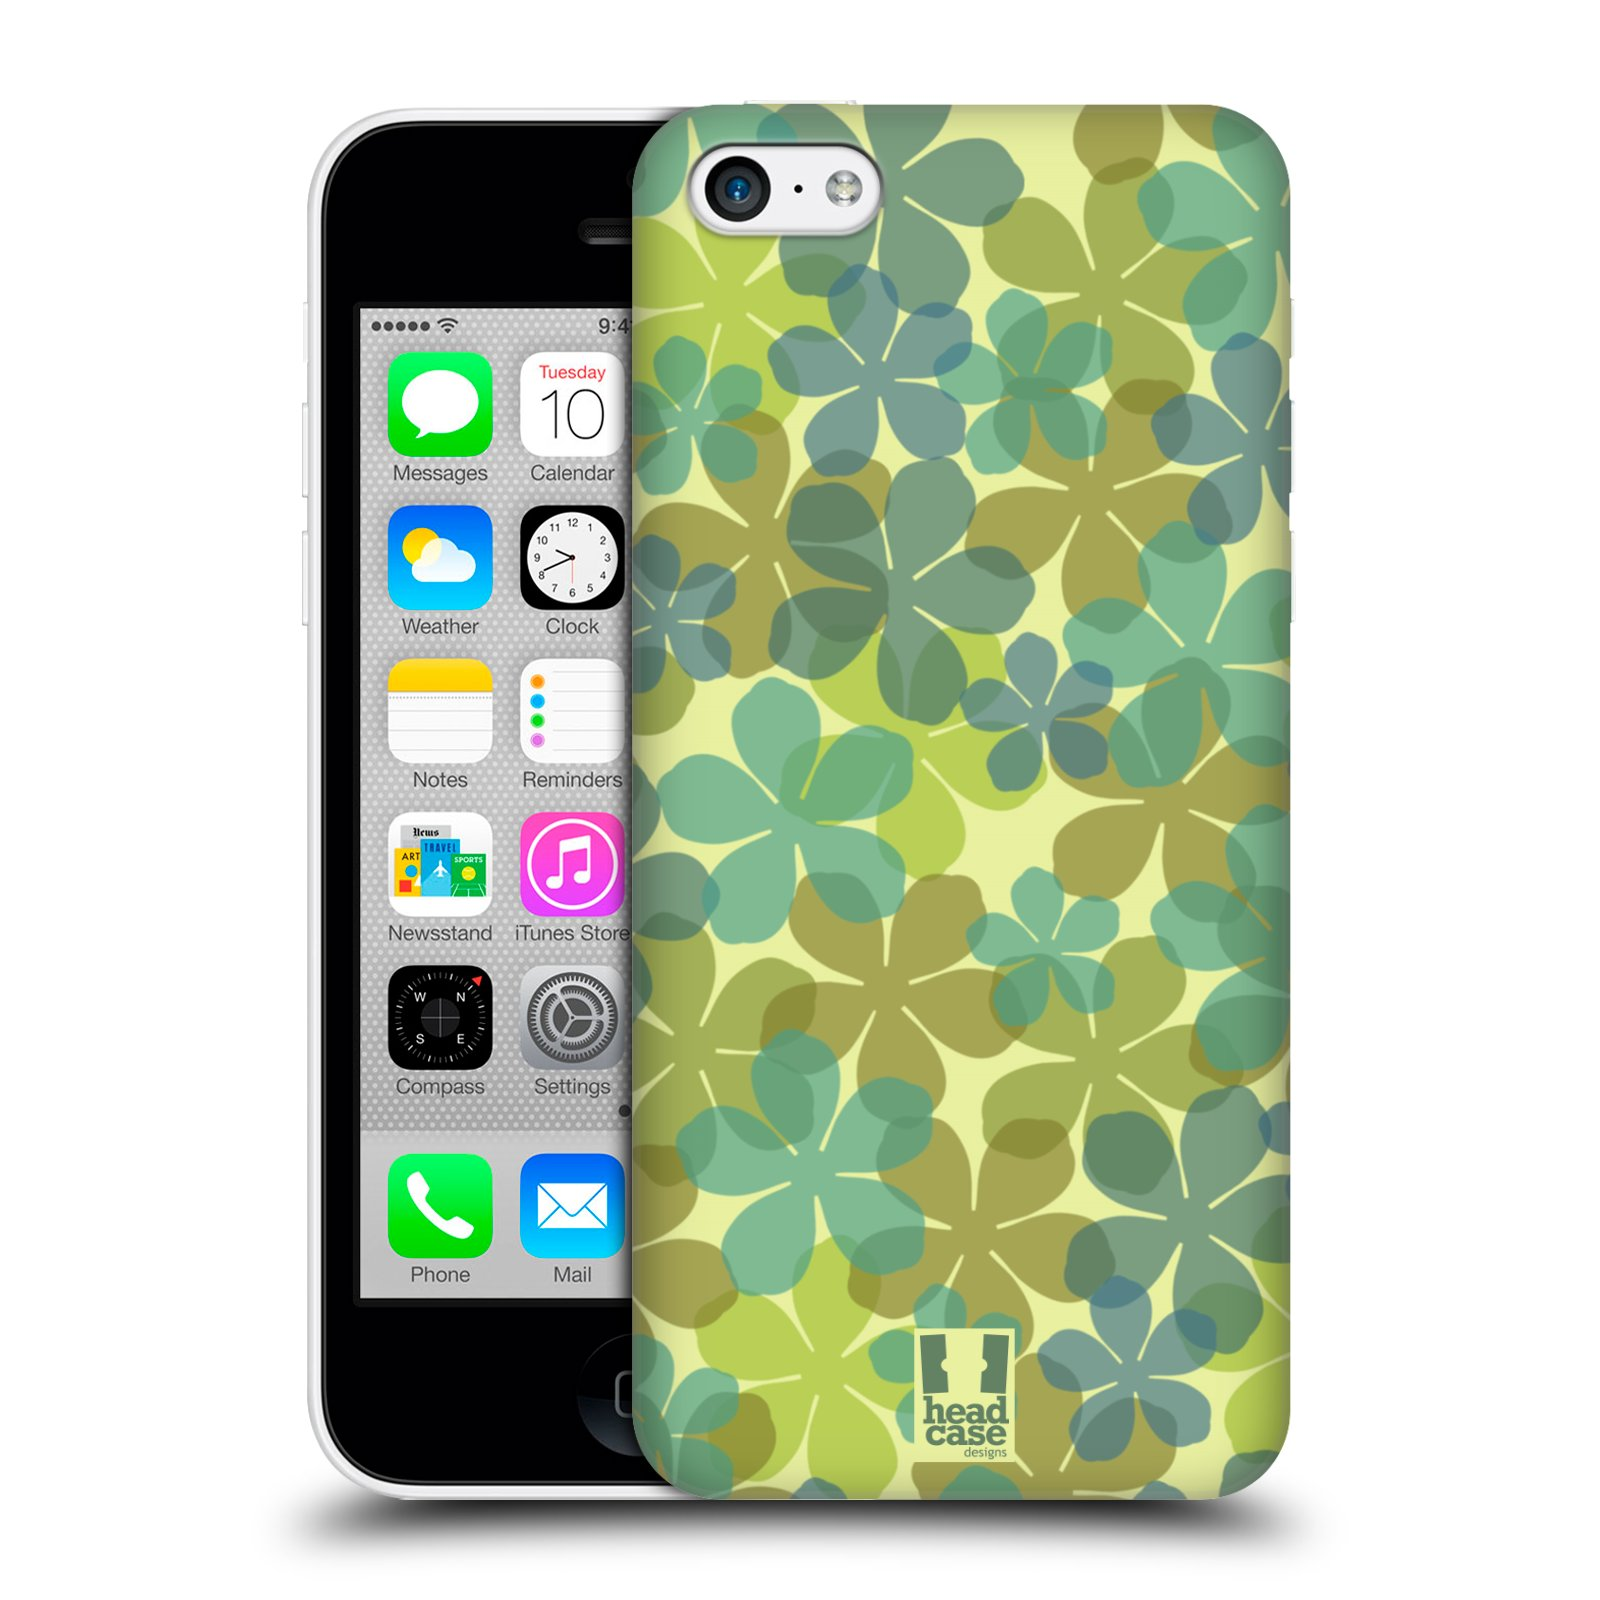 HEAD-CASE-DESIGNS-TRANSLUCENCIES-PROTECTIVE-BACK-CASE-COVER-FOR-APPLE-iPHONE-5C